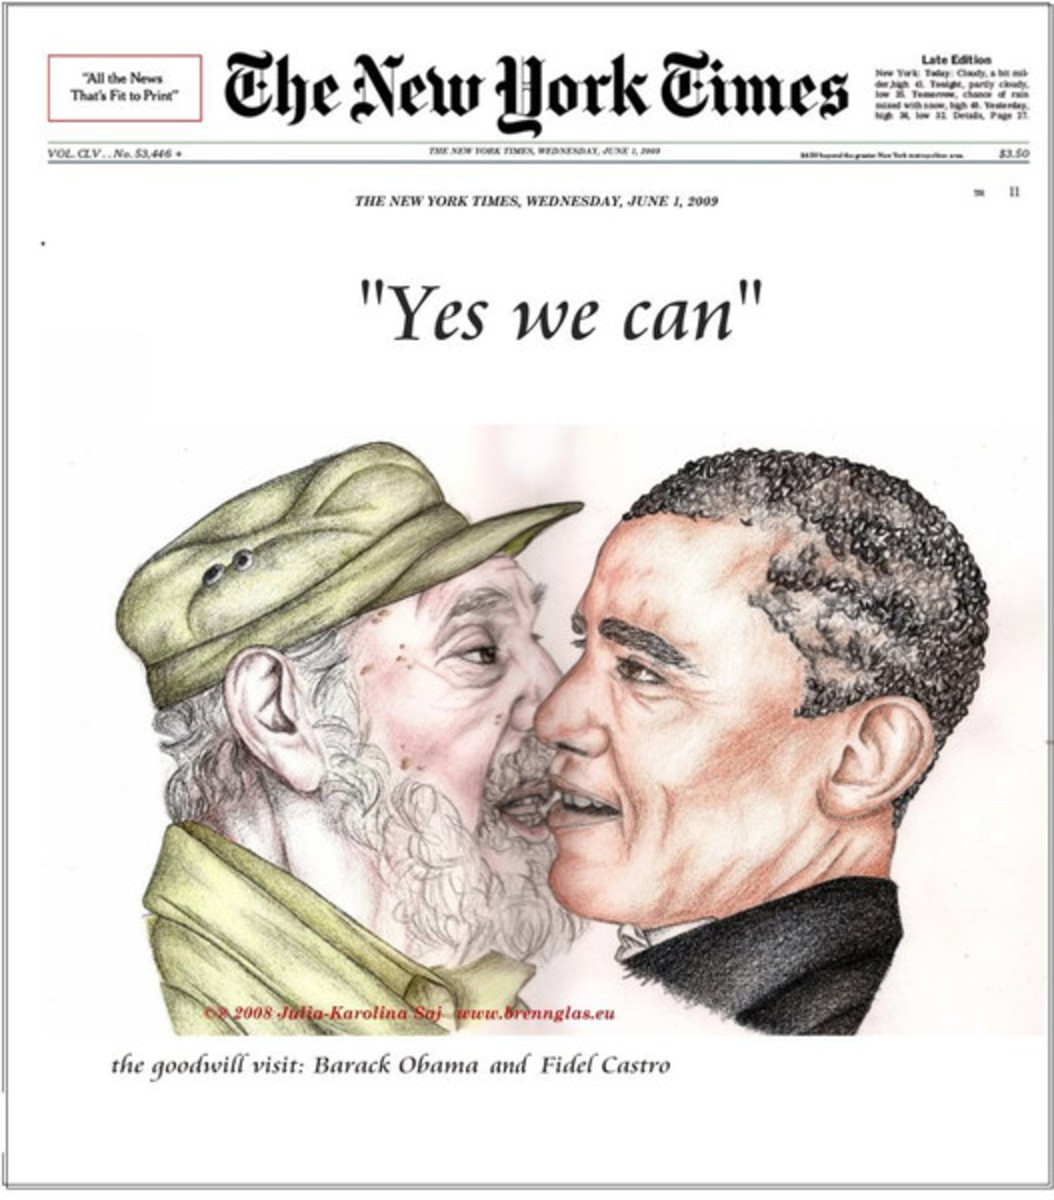 PRESIDENT OBAMA EMBRACES CASTRO'S VISION FOR AMERIKA